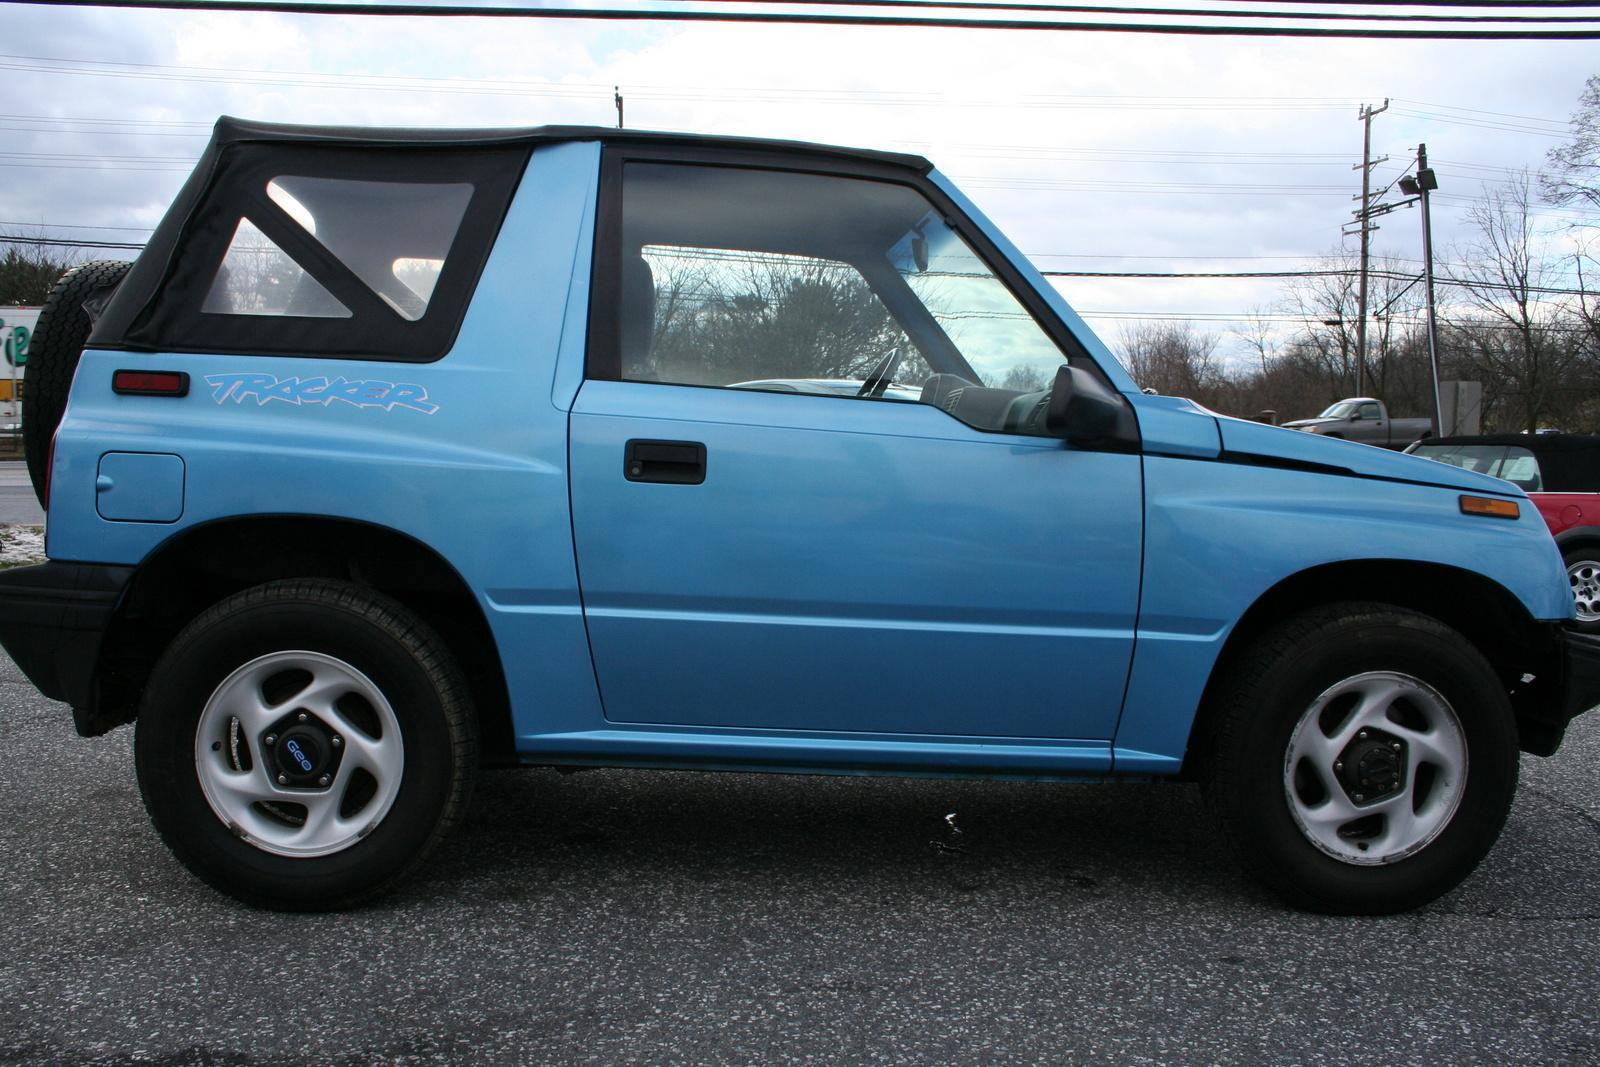 1995 geo tracker information and photos zombiedrive - Tacker fur polstermobel ...